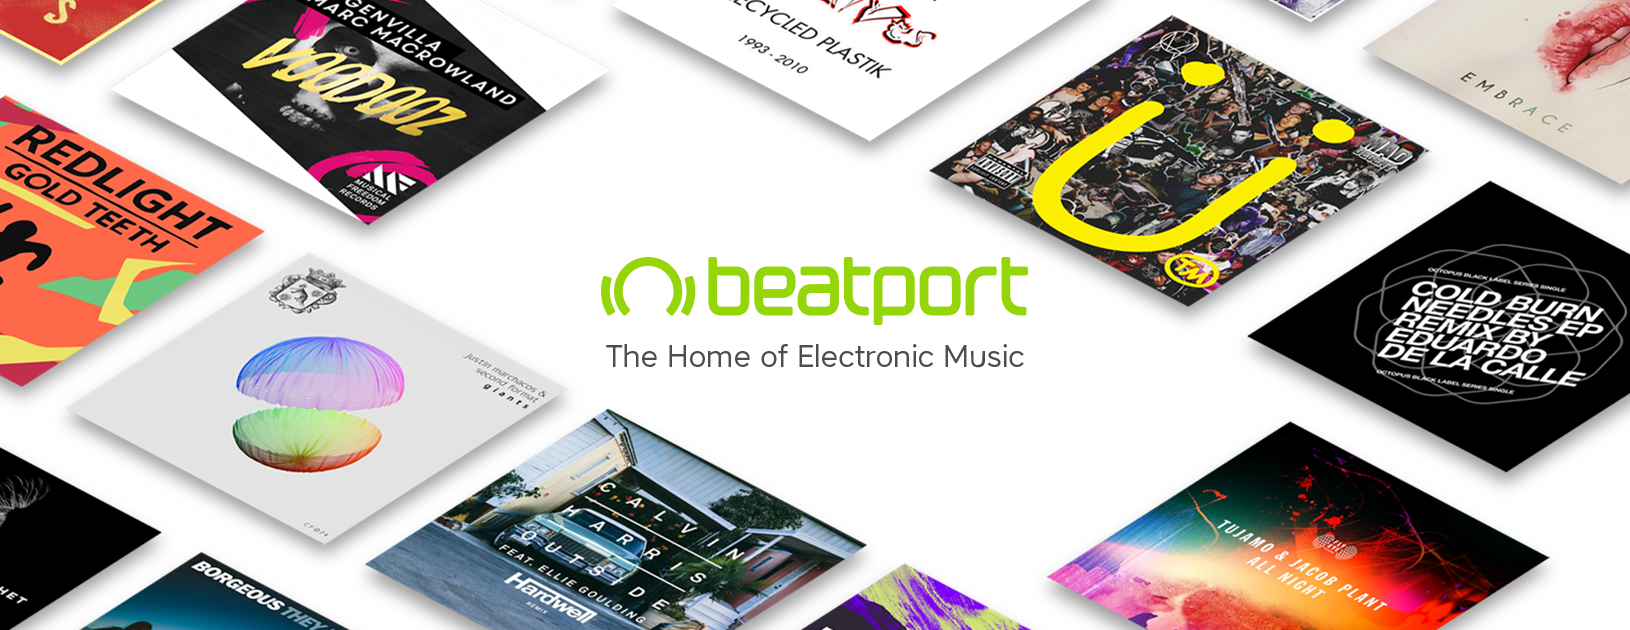 Beatport reports $7.5 million loss in revenueBeatport